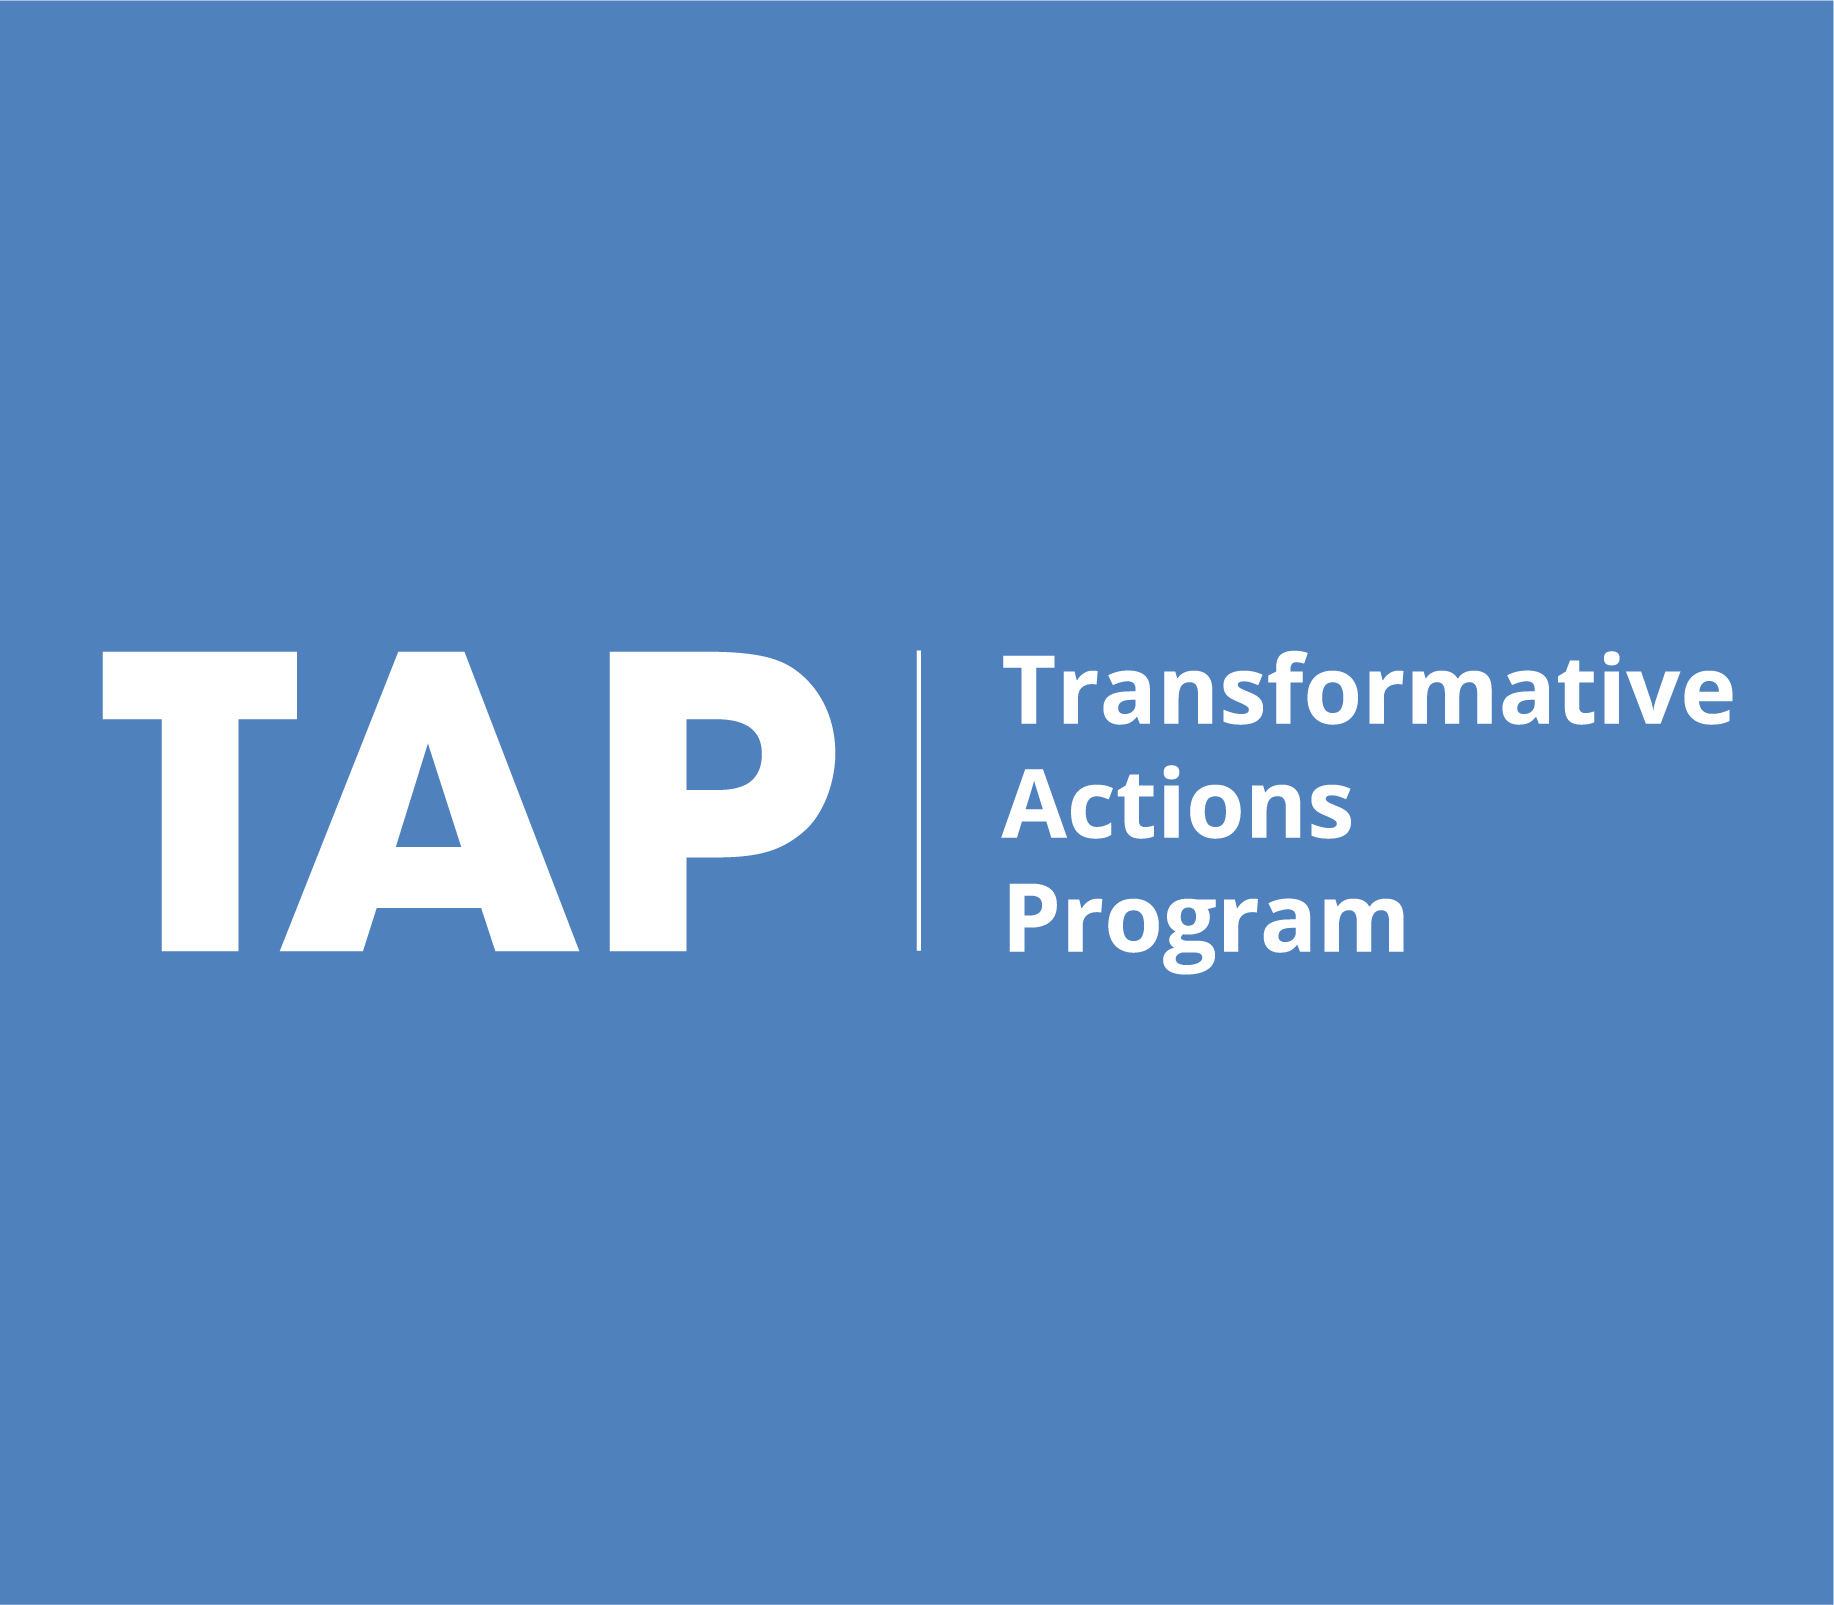 The Transformative Actions Program (TAP)